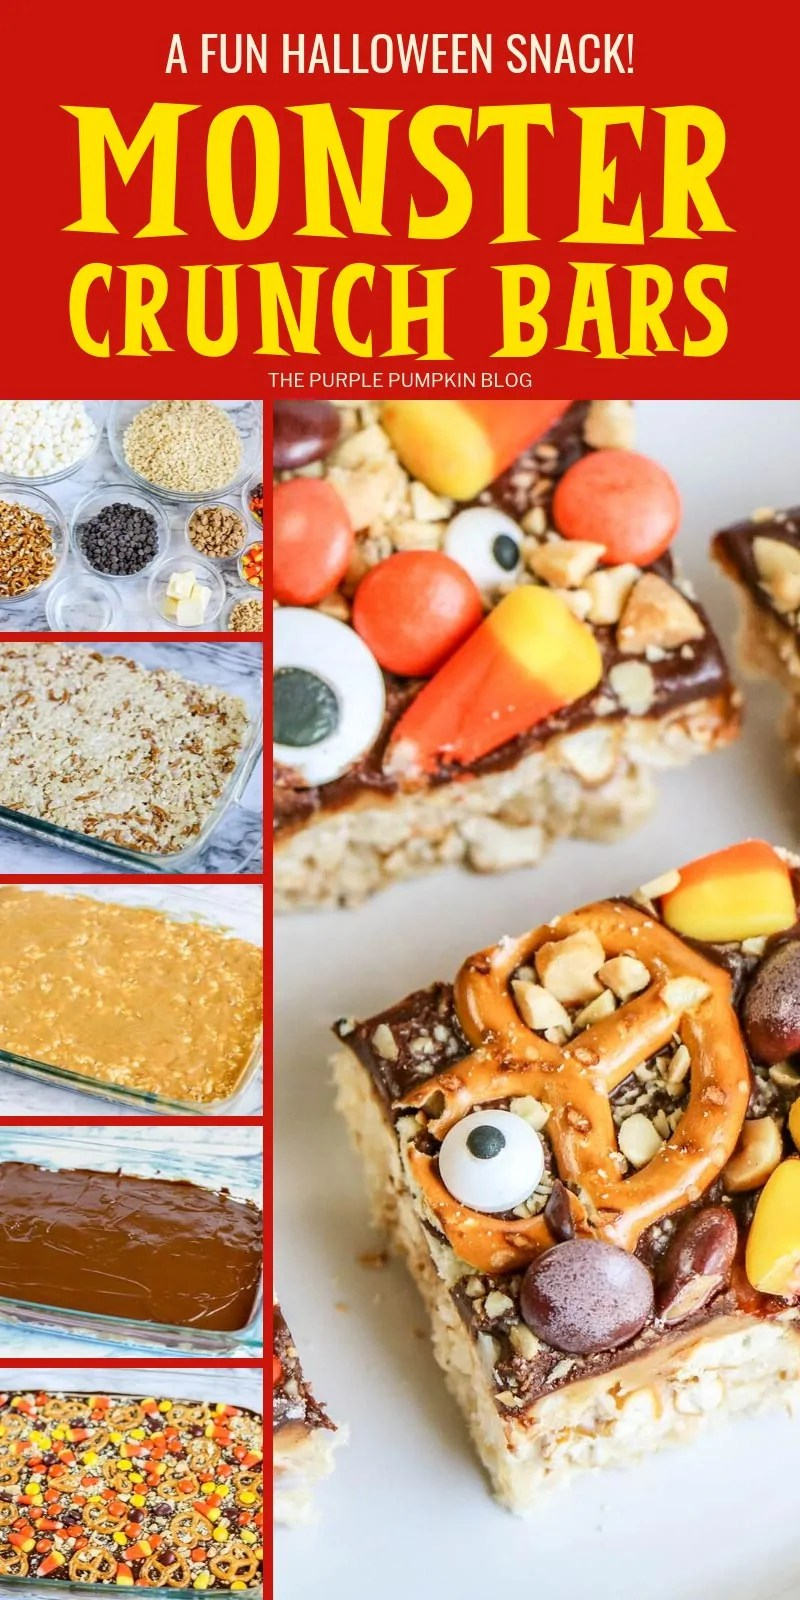 A fun halloween snack - Halloween Rice Krispies Treats - Monster Crunch Bars (step-by-step images)